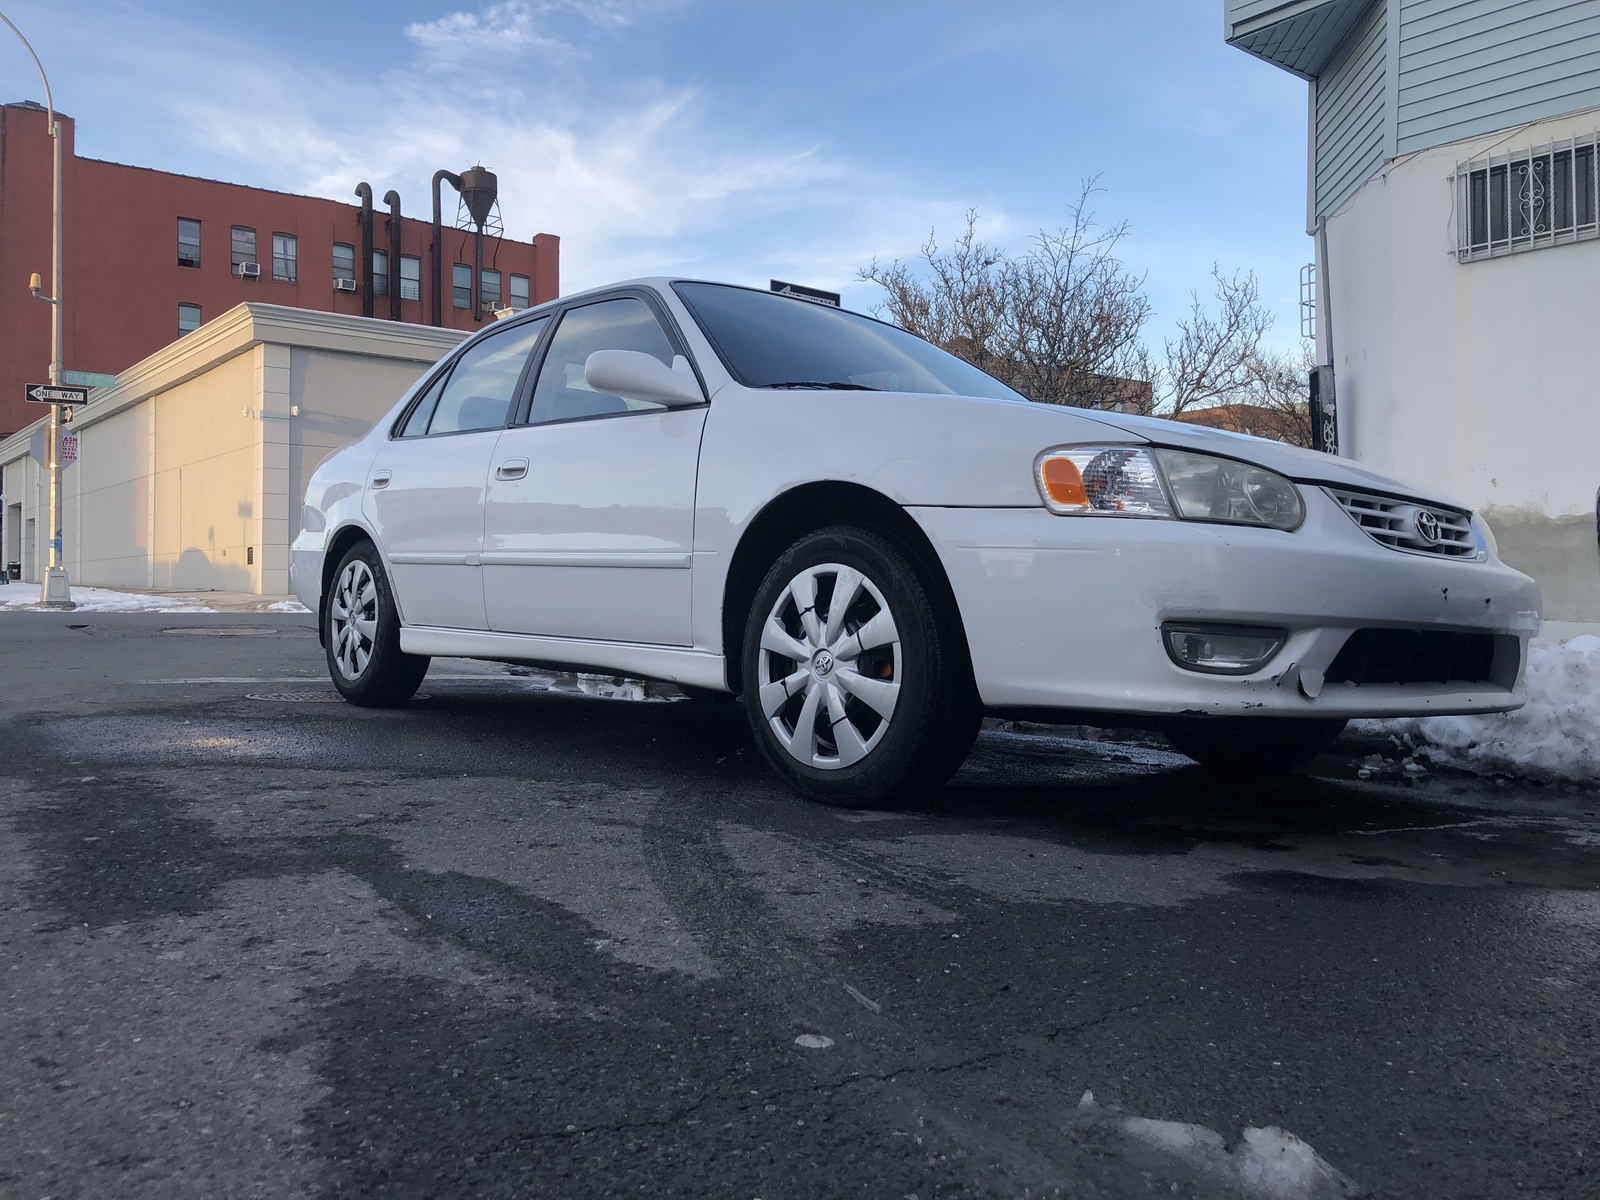 Do A Transmission From A 1995 Toyota Corolla 5speed Fits On A 2002 Toyota  Corolla Type S